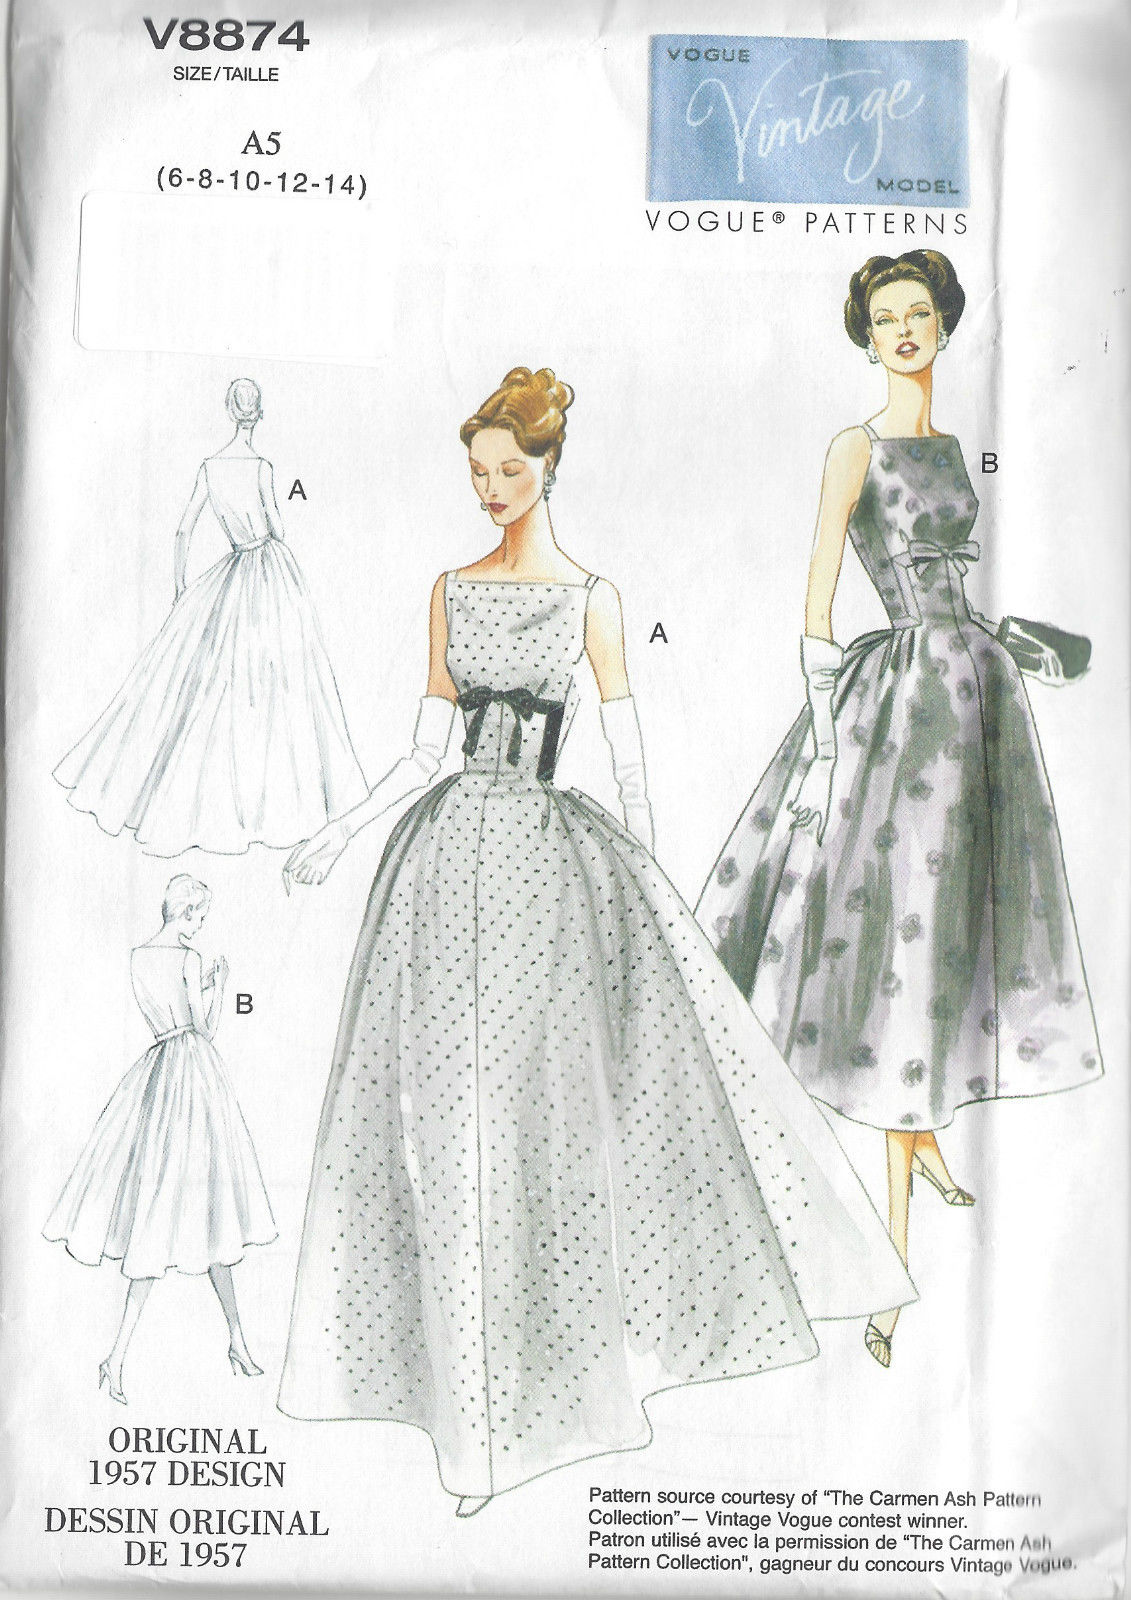 1957 Vintage Vogue Sewing Pattern B30 1 2 31 1 2 32 1 2 34